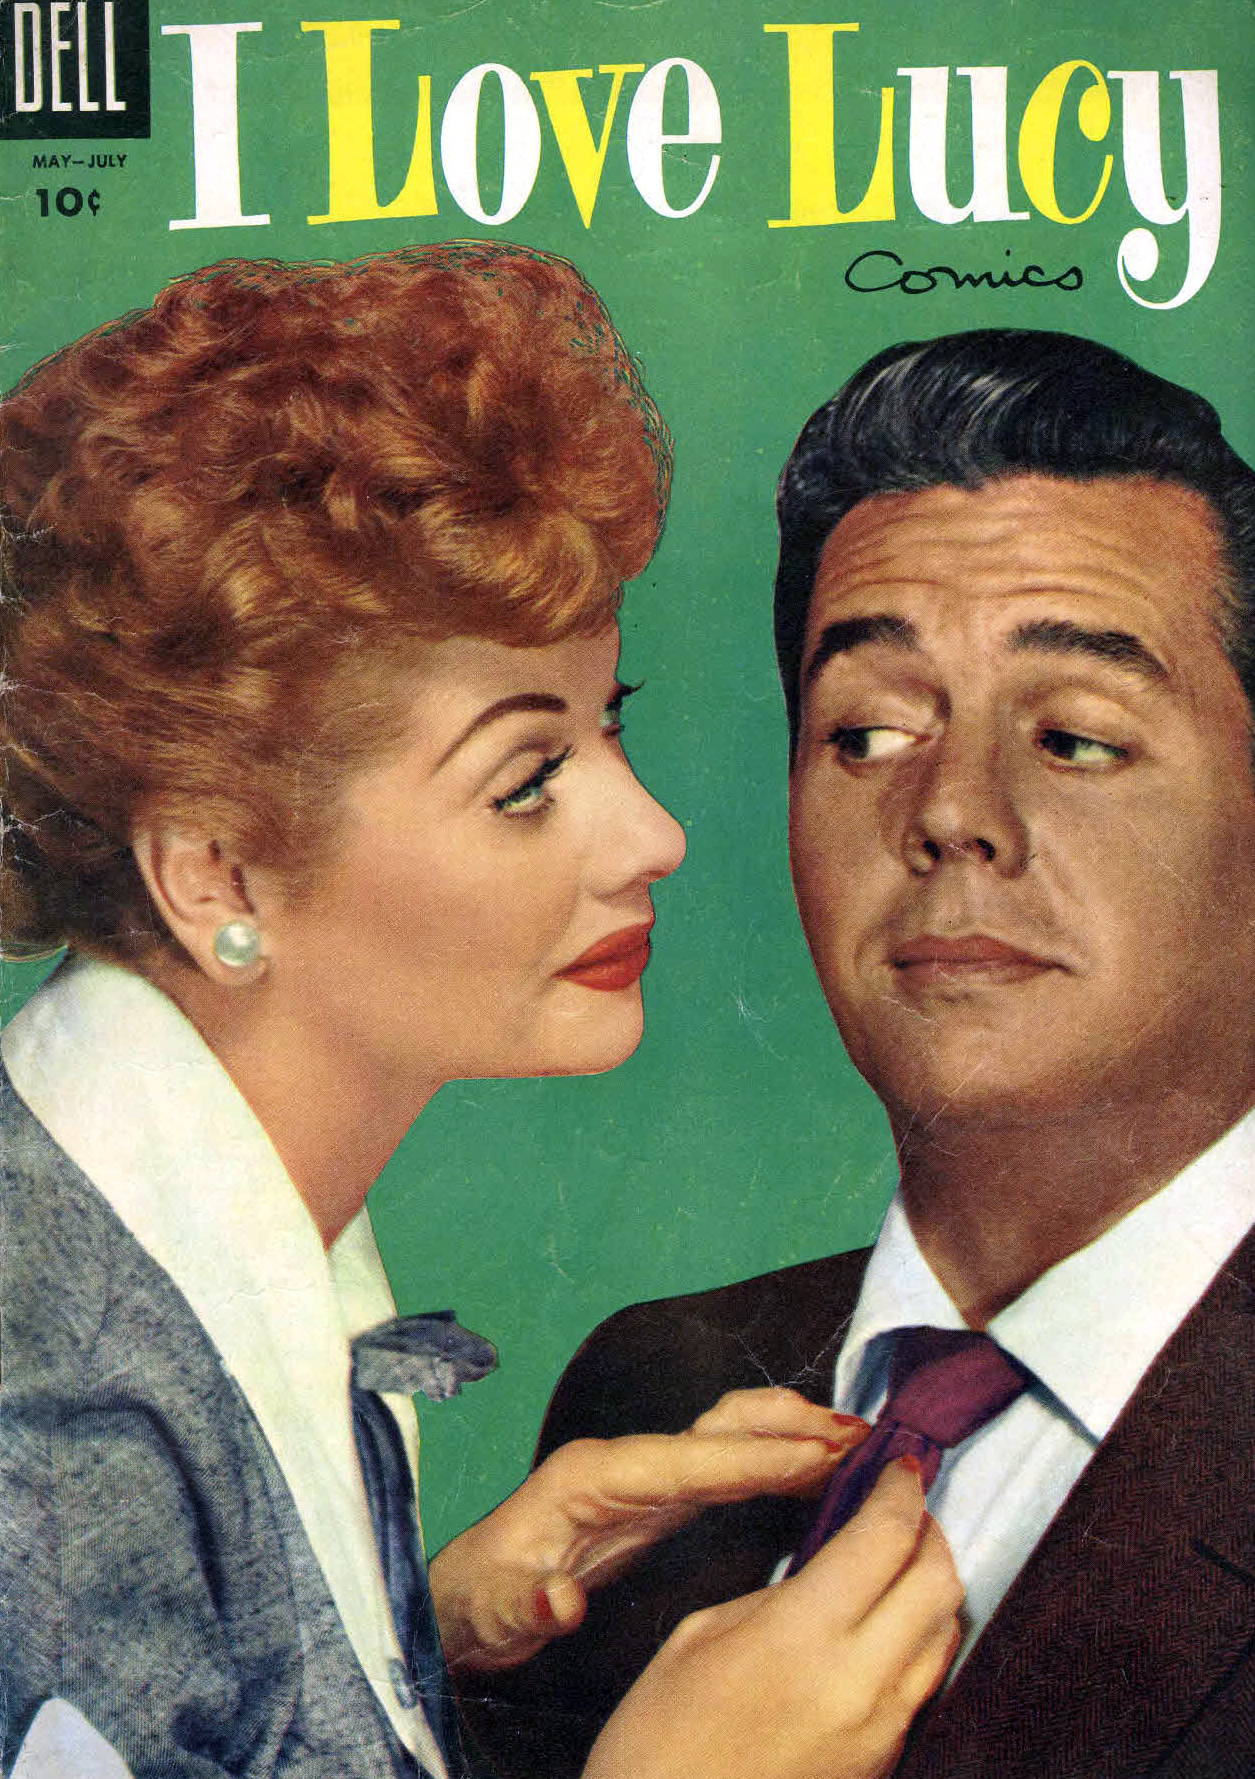 I Love Lucy magazine cover - Lucille Ball and Desi Arnaz